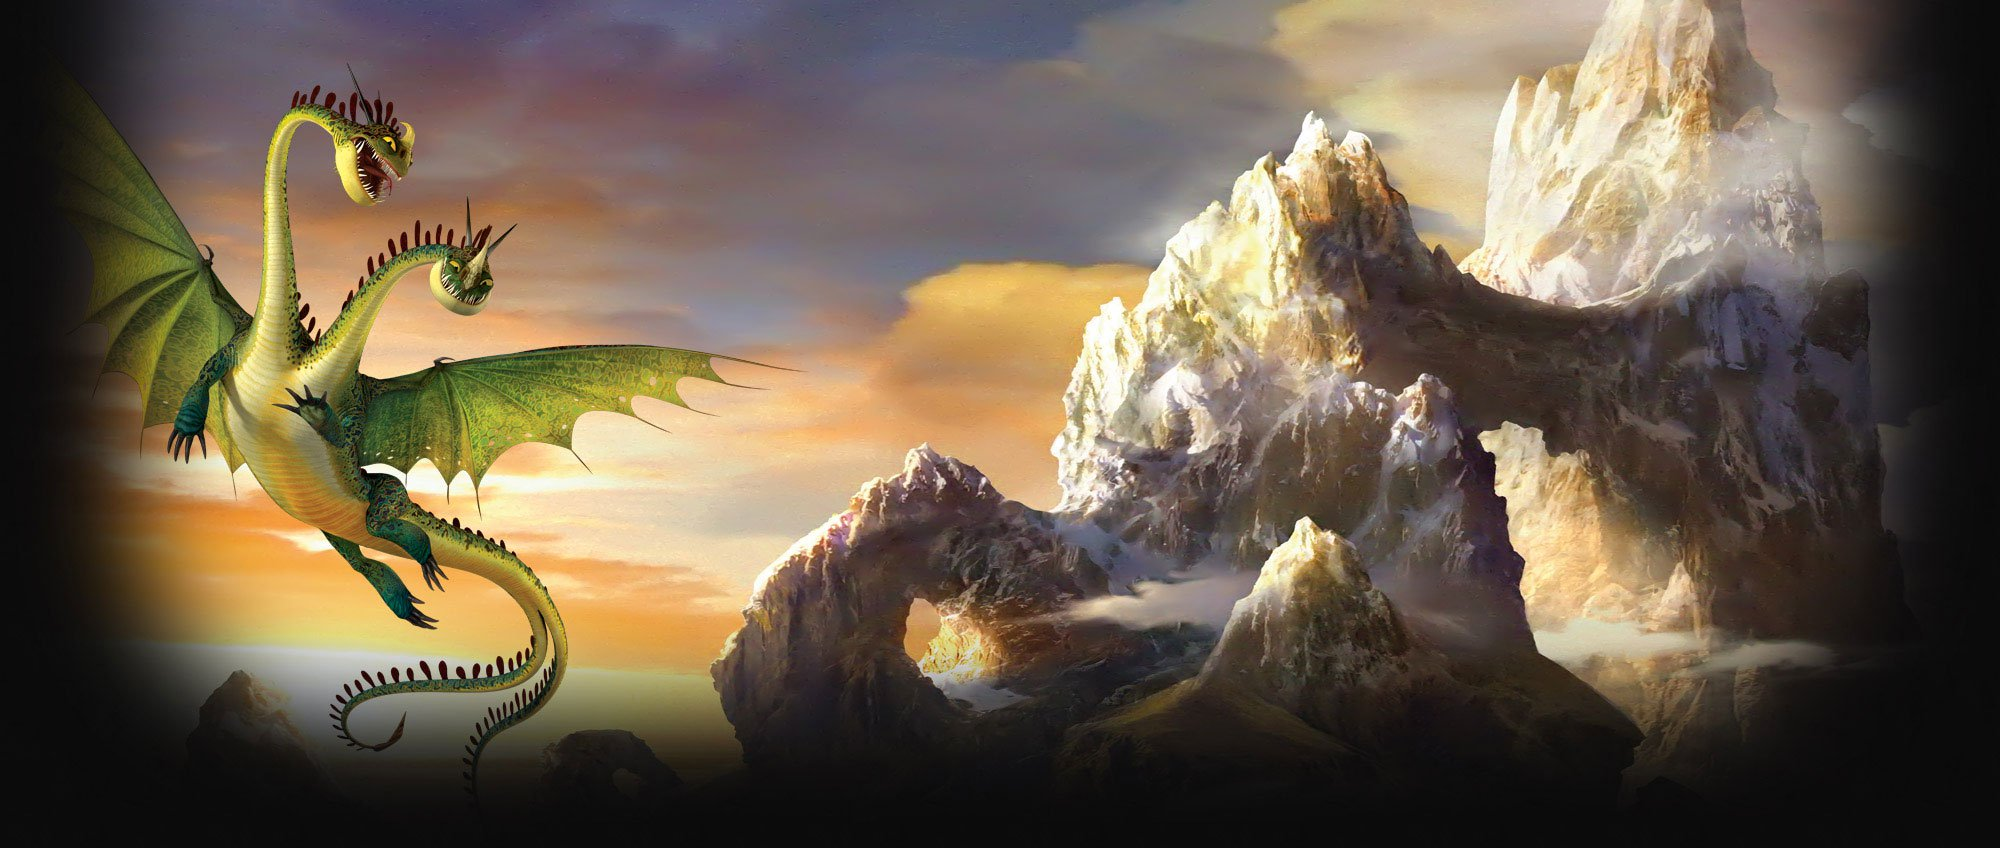 HTTYD on Mobile | iOS and Android Dragon Games | School of